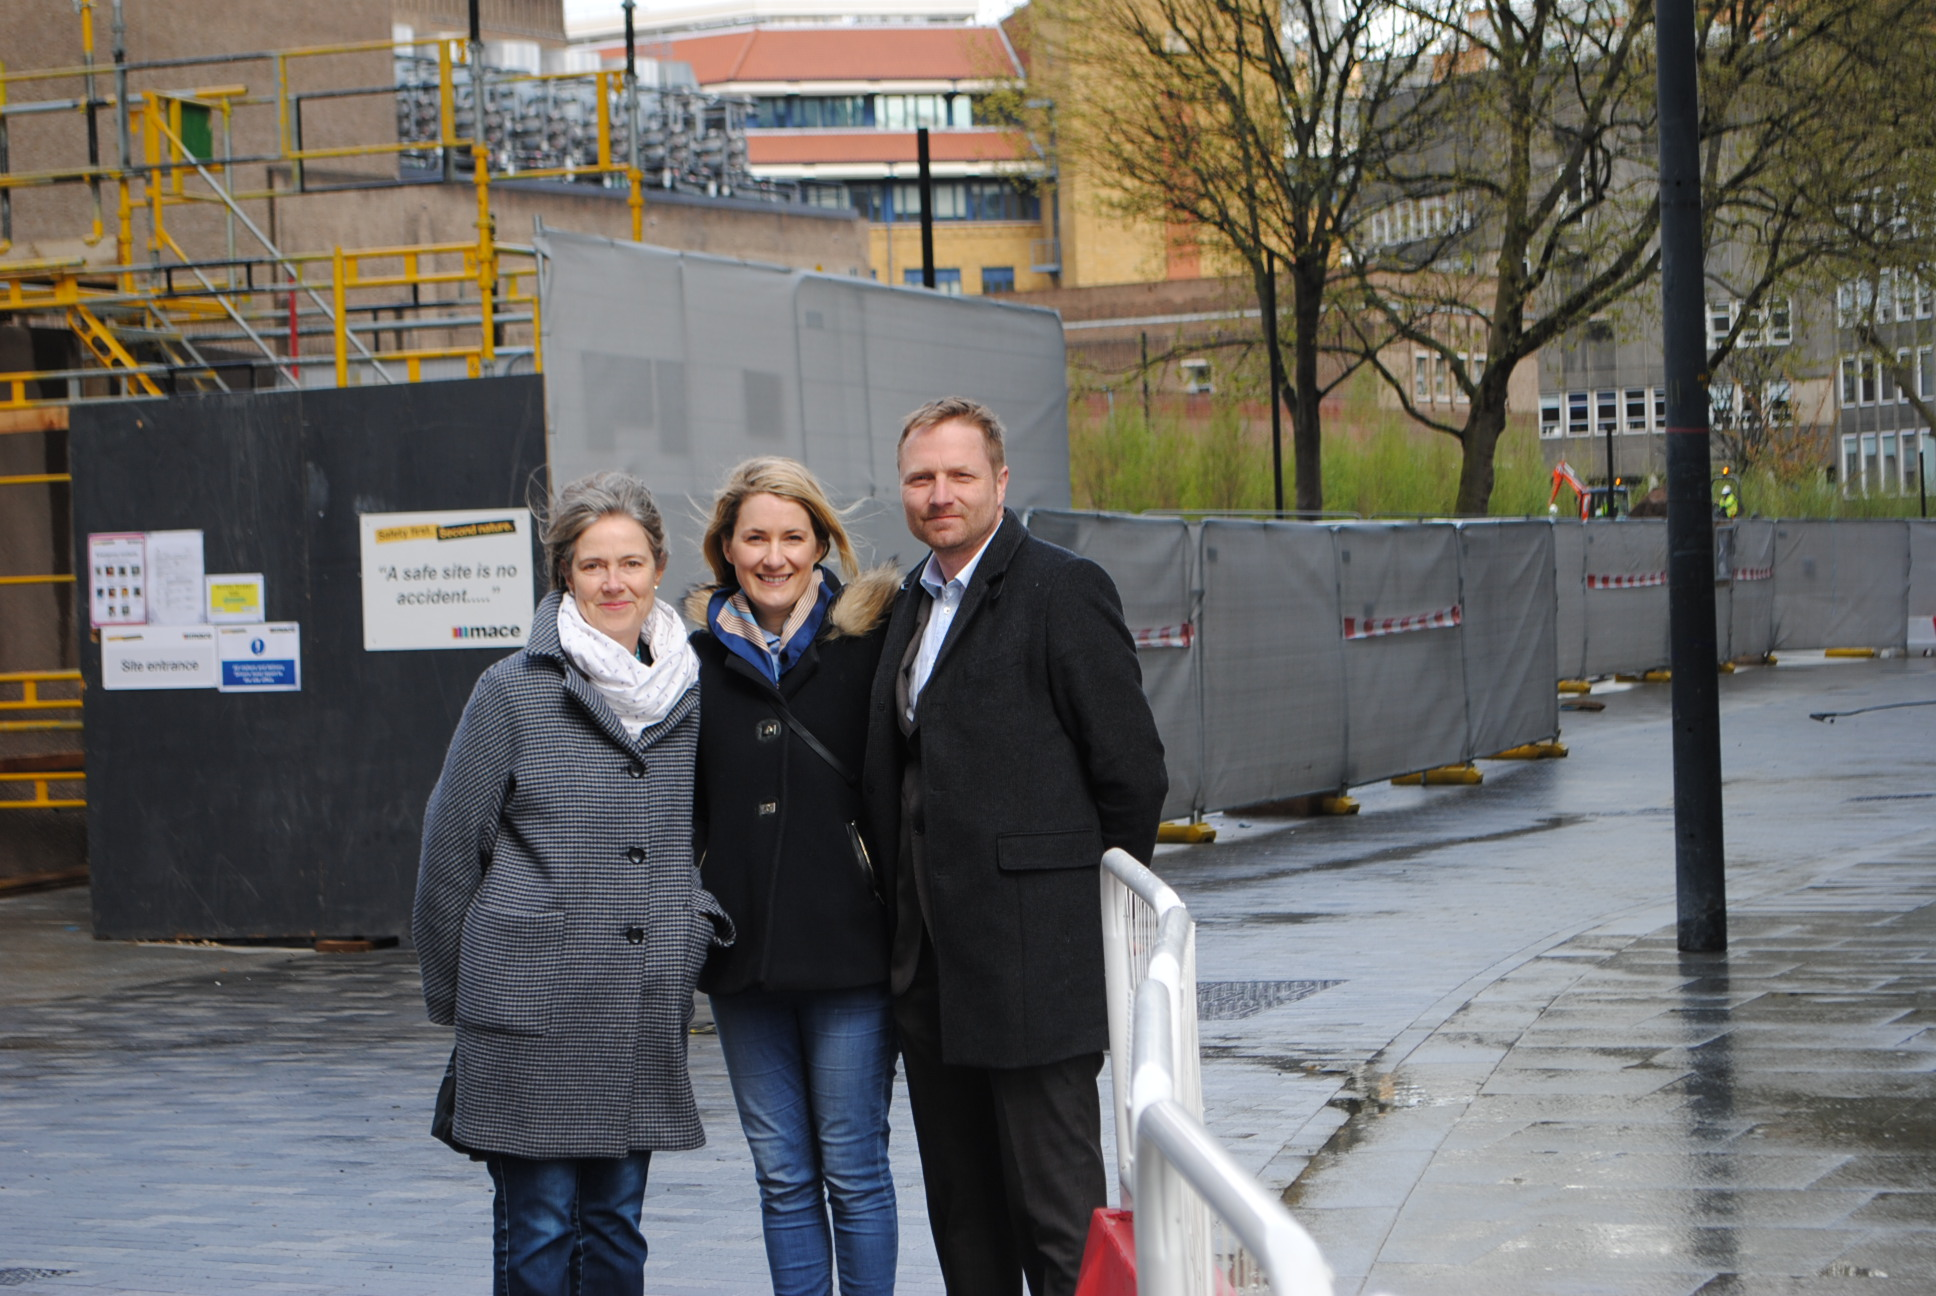 Sumner Street: council unveils car-free gateway to Tate Modern